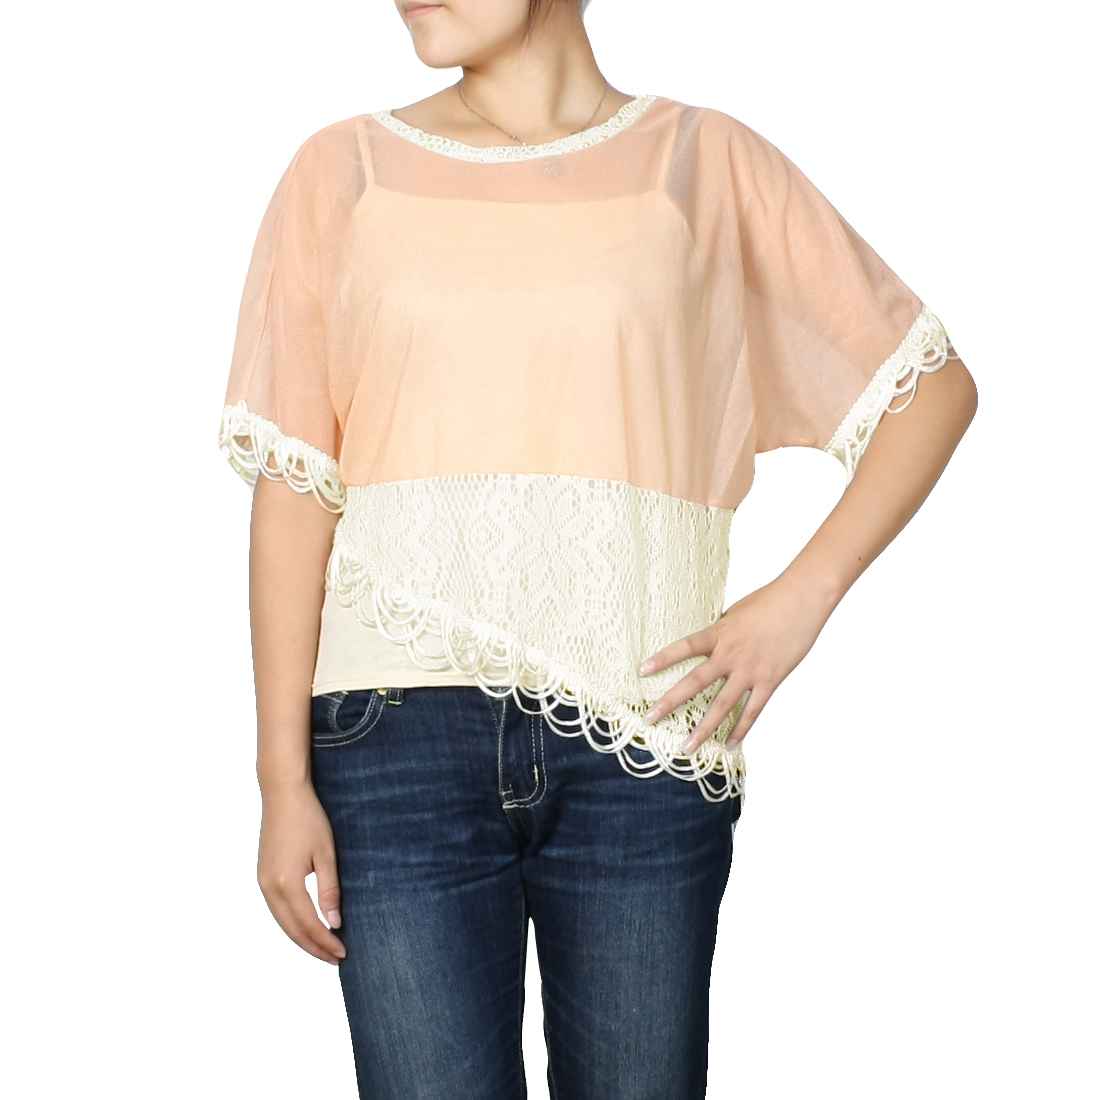 Women Salmon Pink Scoop Neck Bat Sleeve Semi Sheer Shirt Top XS